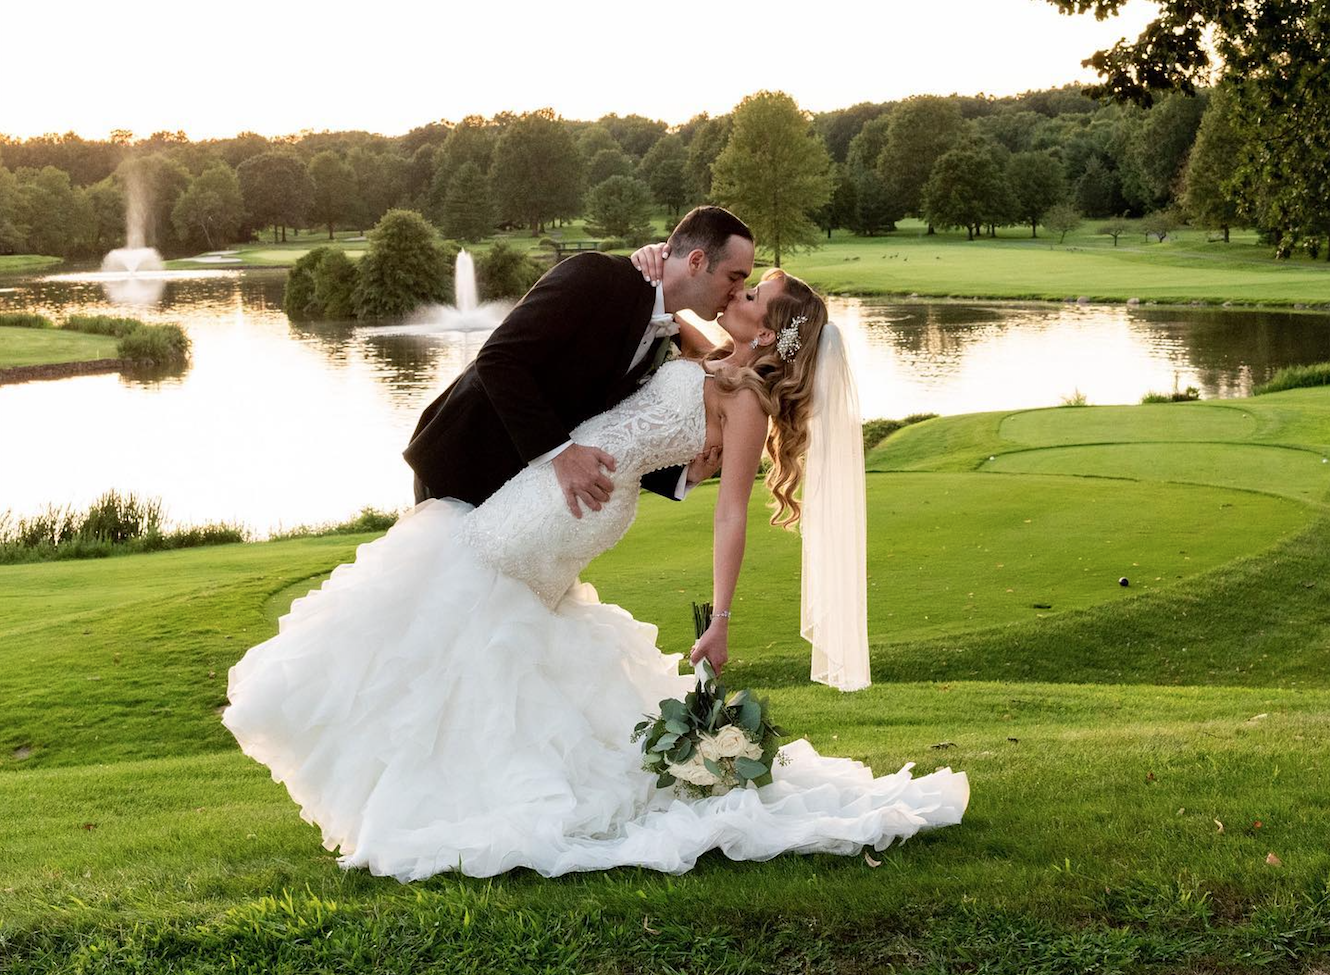 Bride and groom by lake at Brooklake wedding ceremony, Northern New Jersey